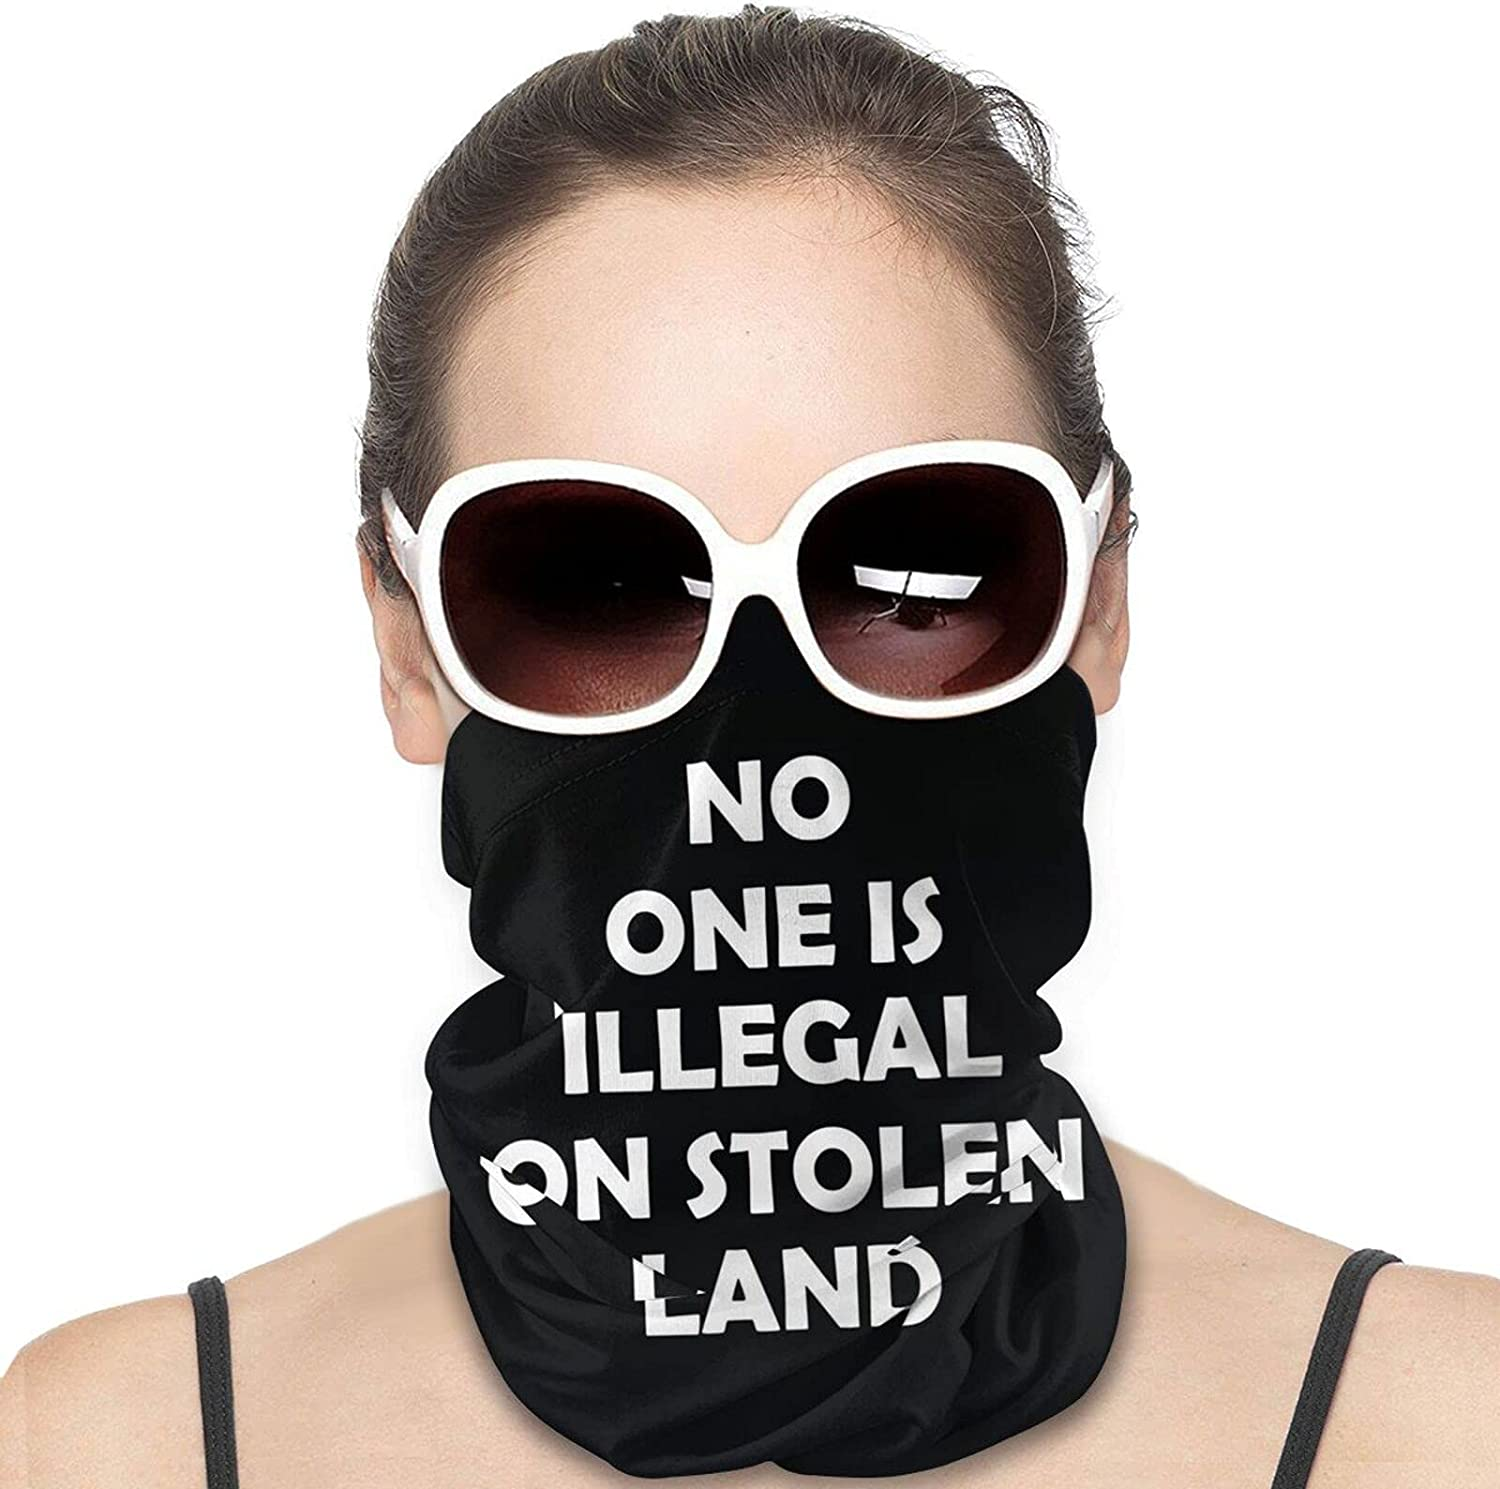 No One Is Illegal On Stolen Land Round Neck Gaiter Bandnas Face Cover Uv Protection Prevent bask in Ice Scarf Headbands Perfect for Motorcycle Cycling Running Festival Raves Outdoors